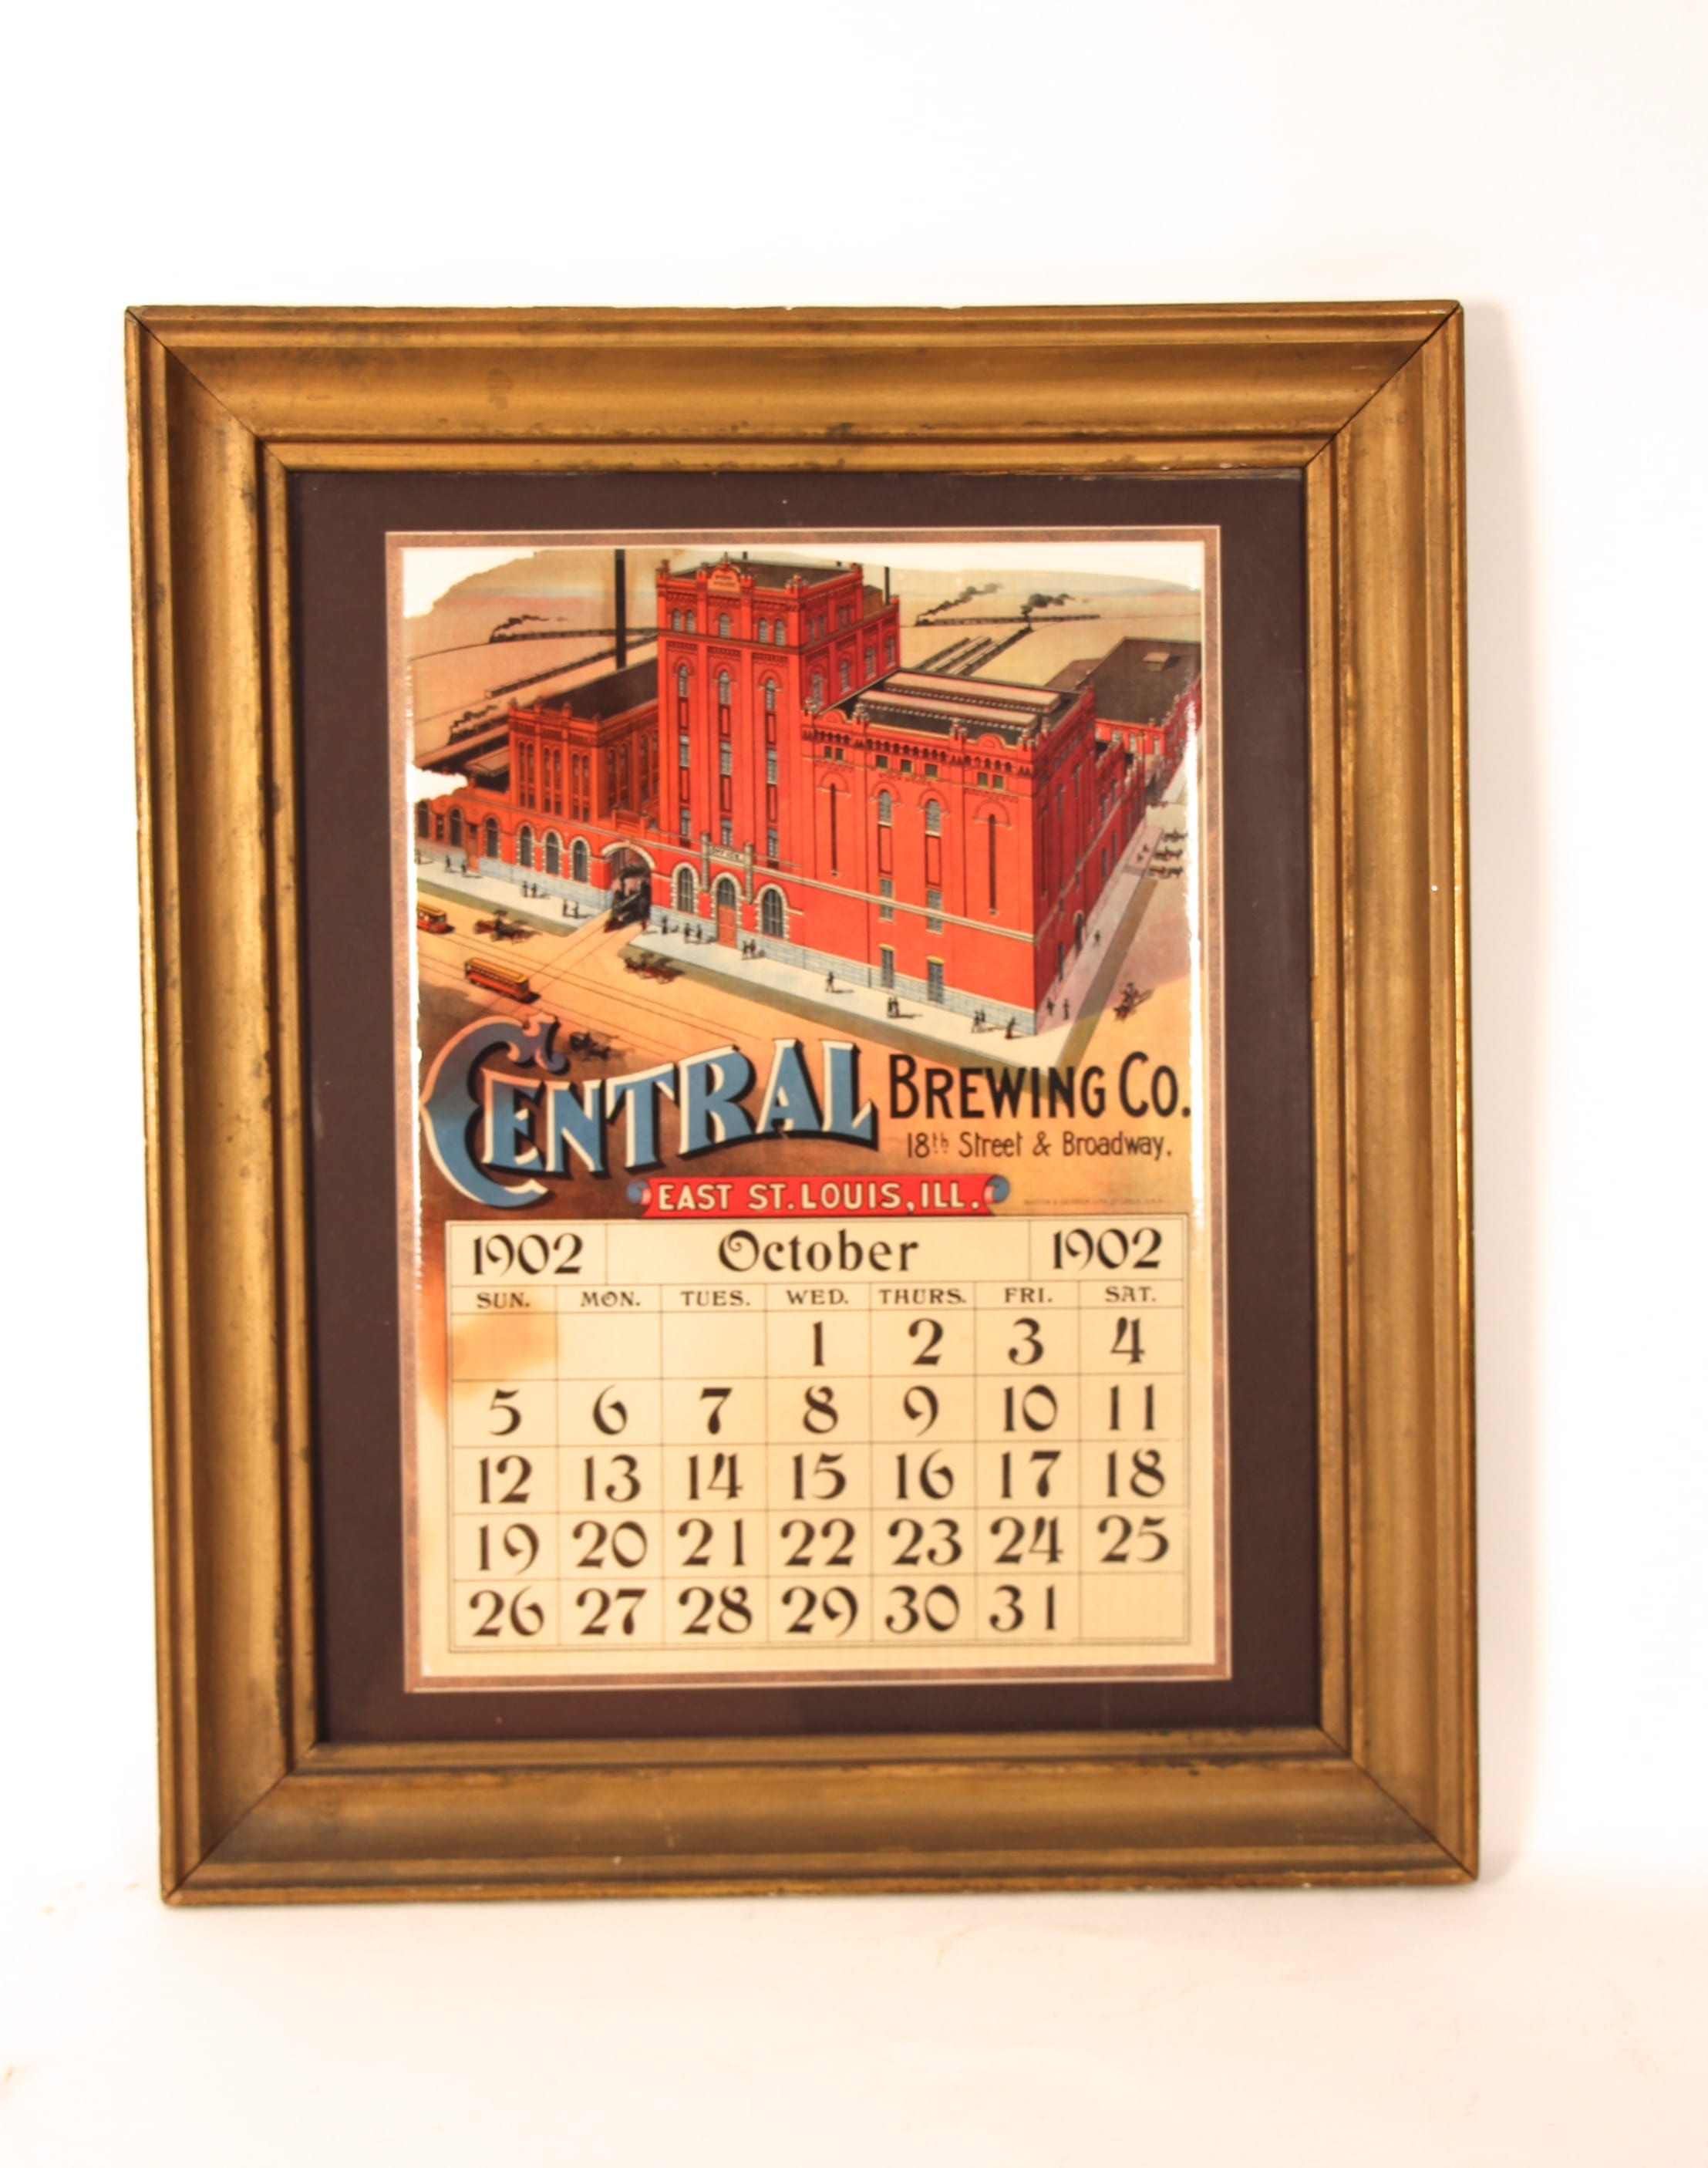 Central Brewery Advertising Calendar1903, E. St. Louis, IL